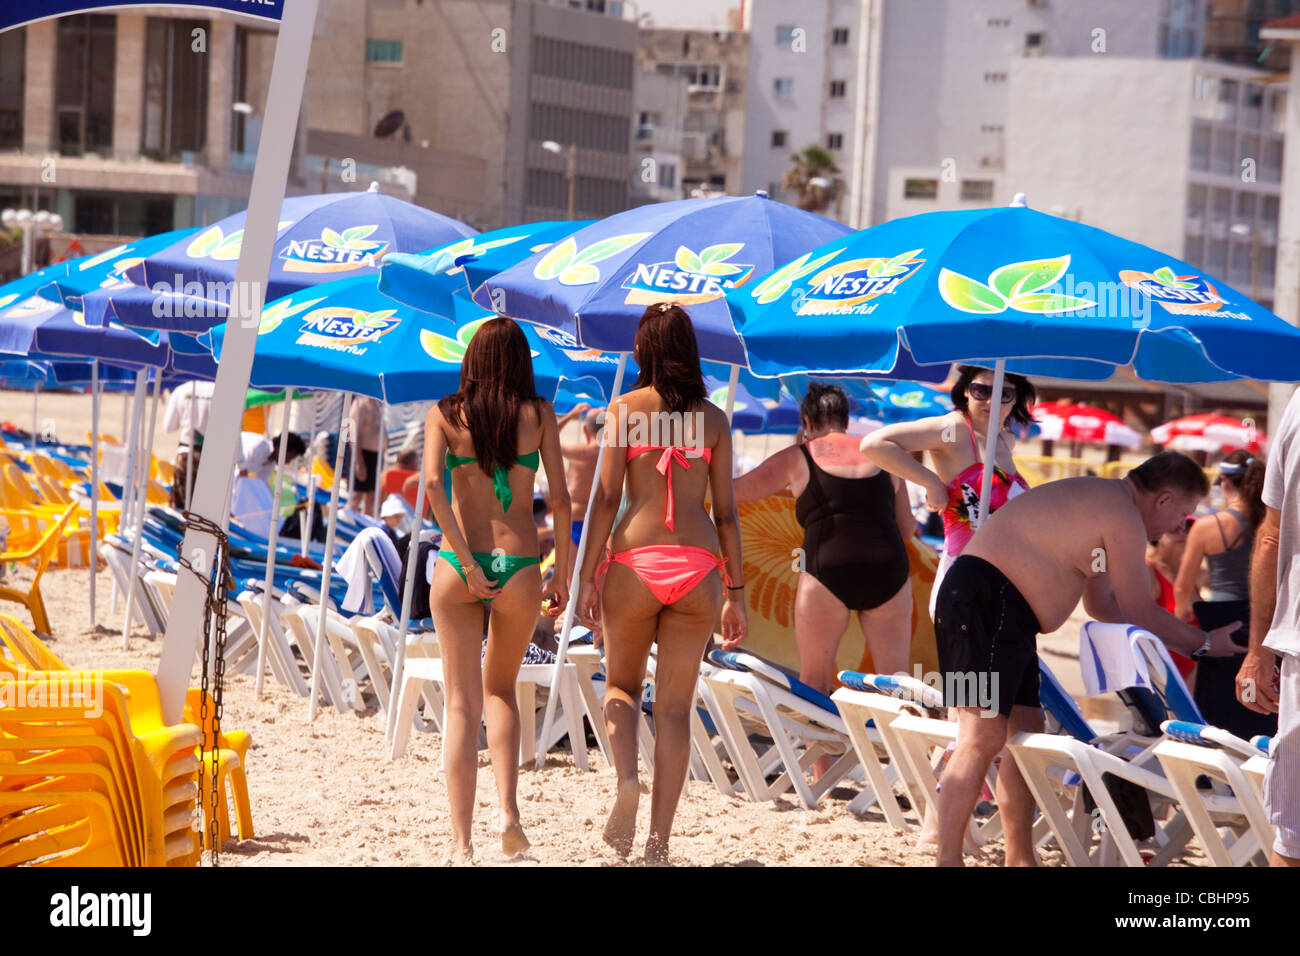 holiday or weekend crowds at a Tel Aviv beach in Israel - Stock Image